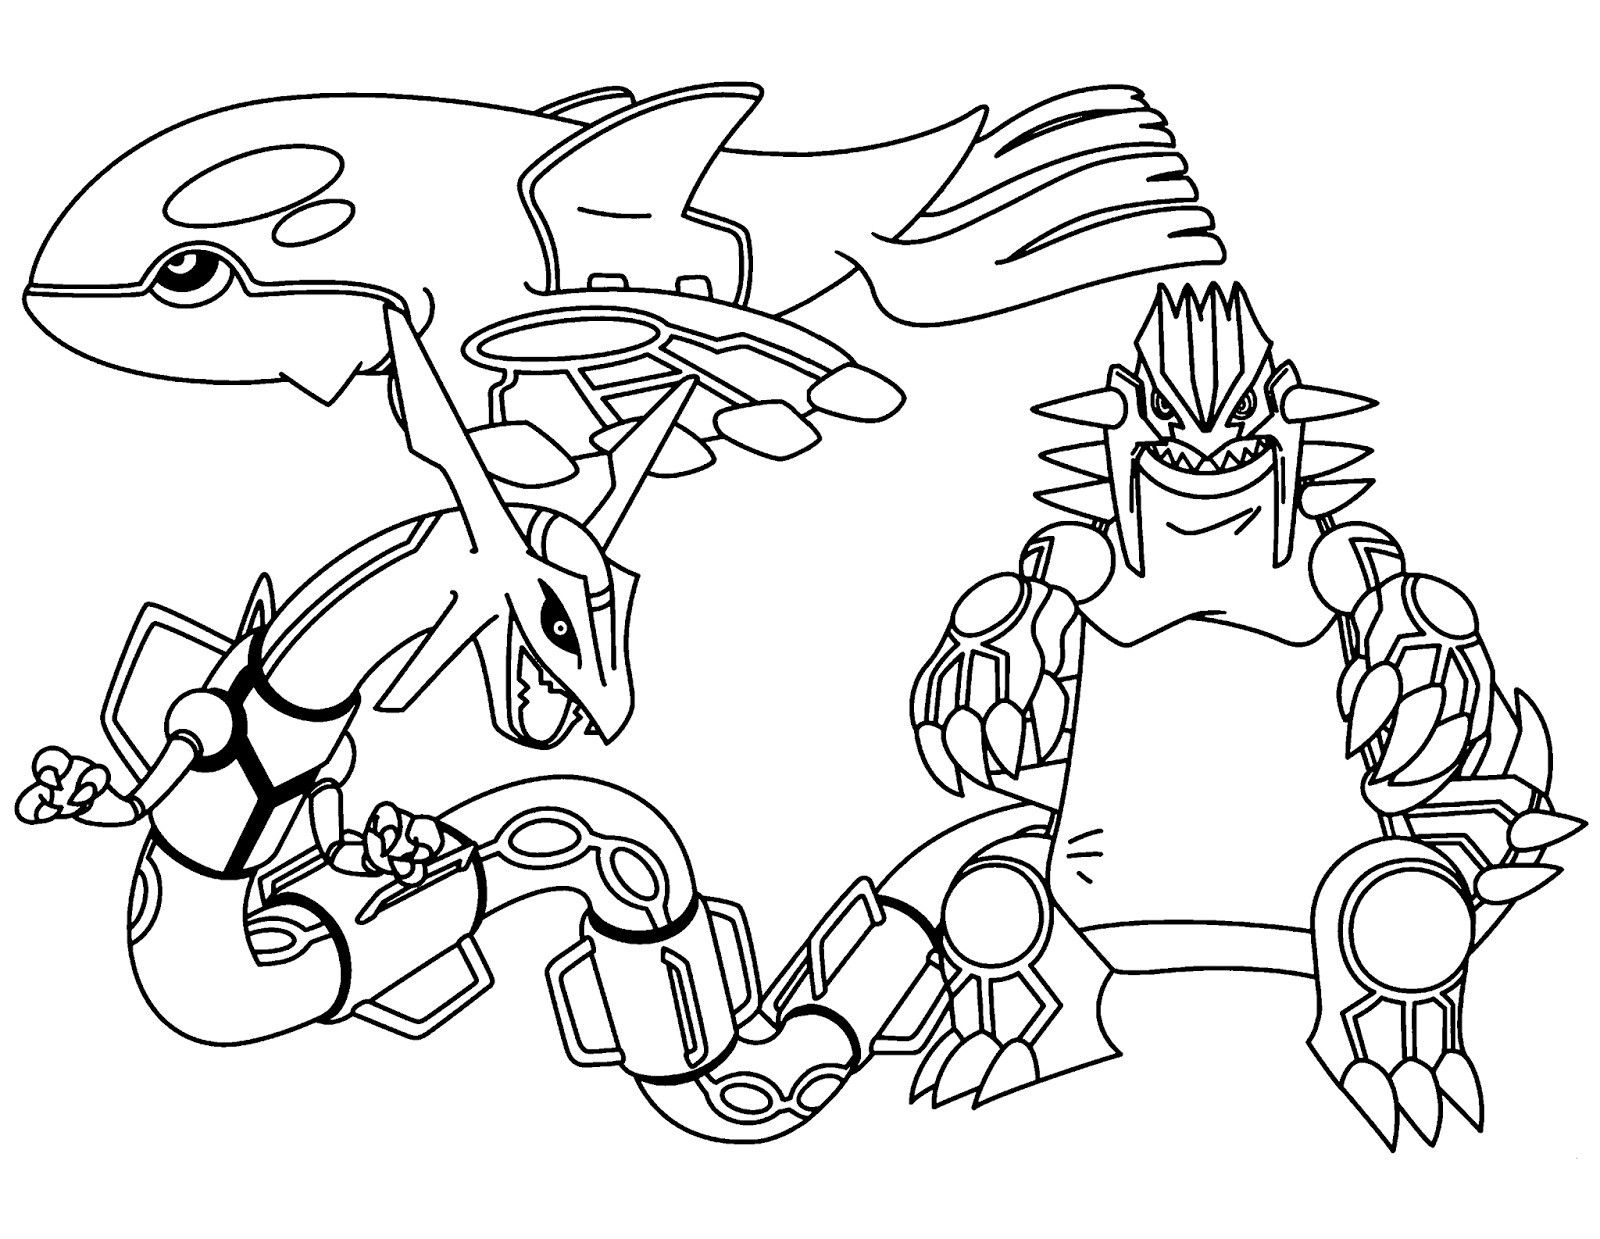 Pokemon Coloring Pages Legendary From The Thousands Of Photographs On Line Concern Pokemon Coloring Pages Cartoon Coloring Pages Coloring Pages Inspirational